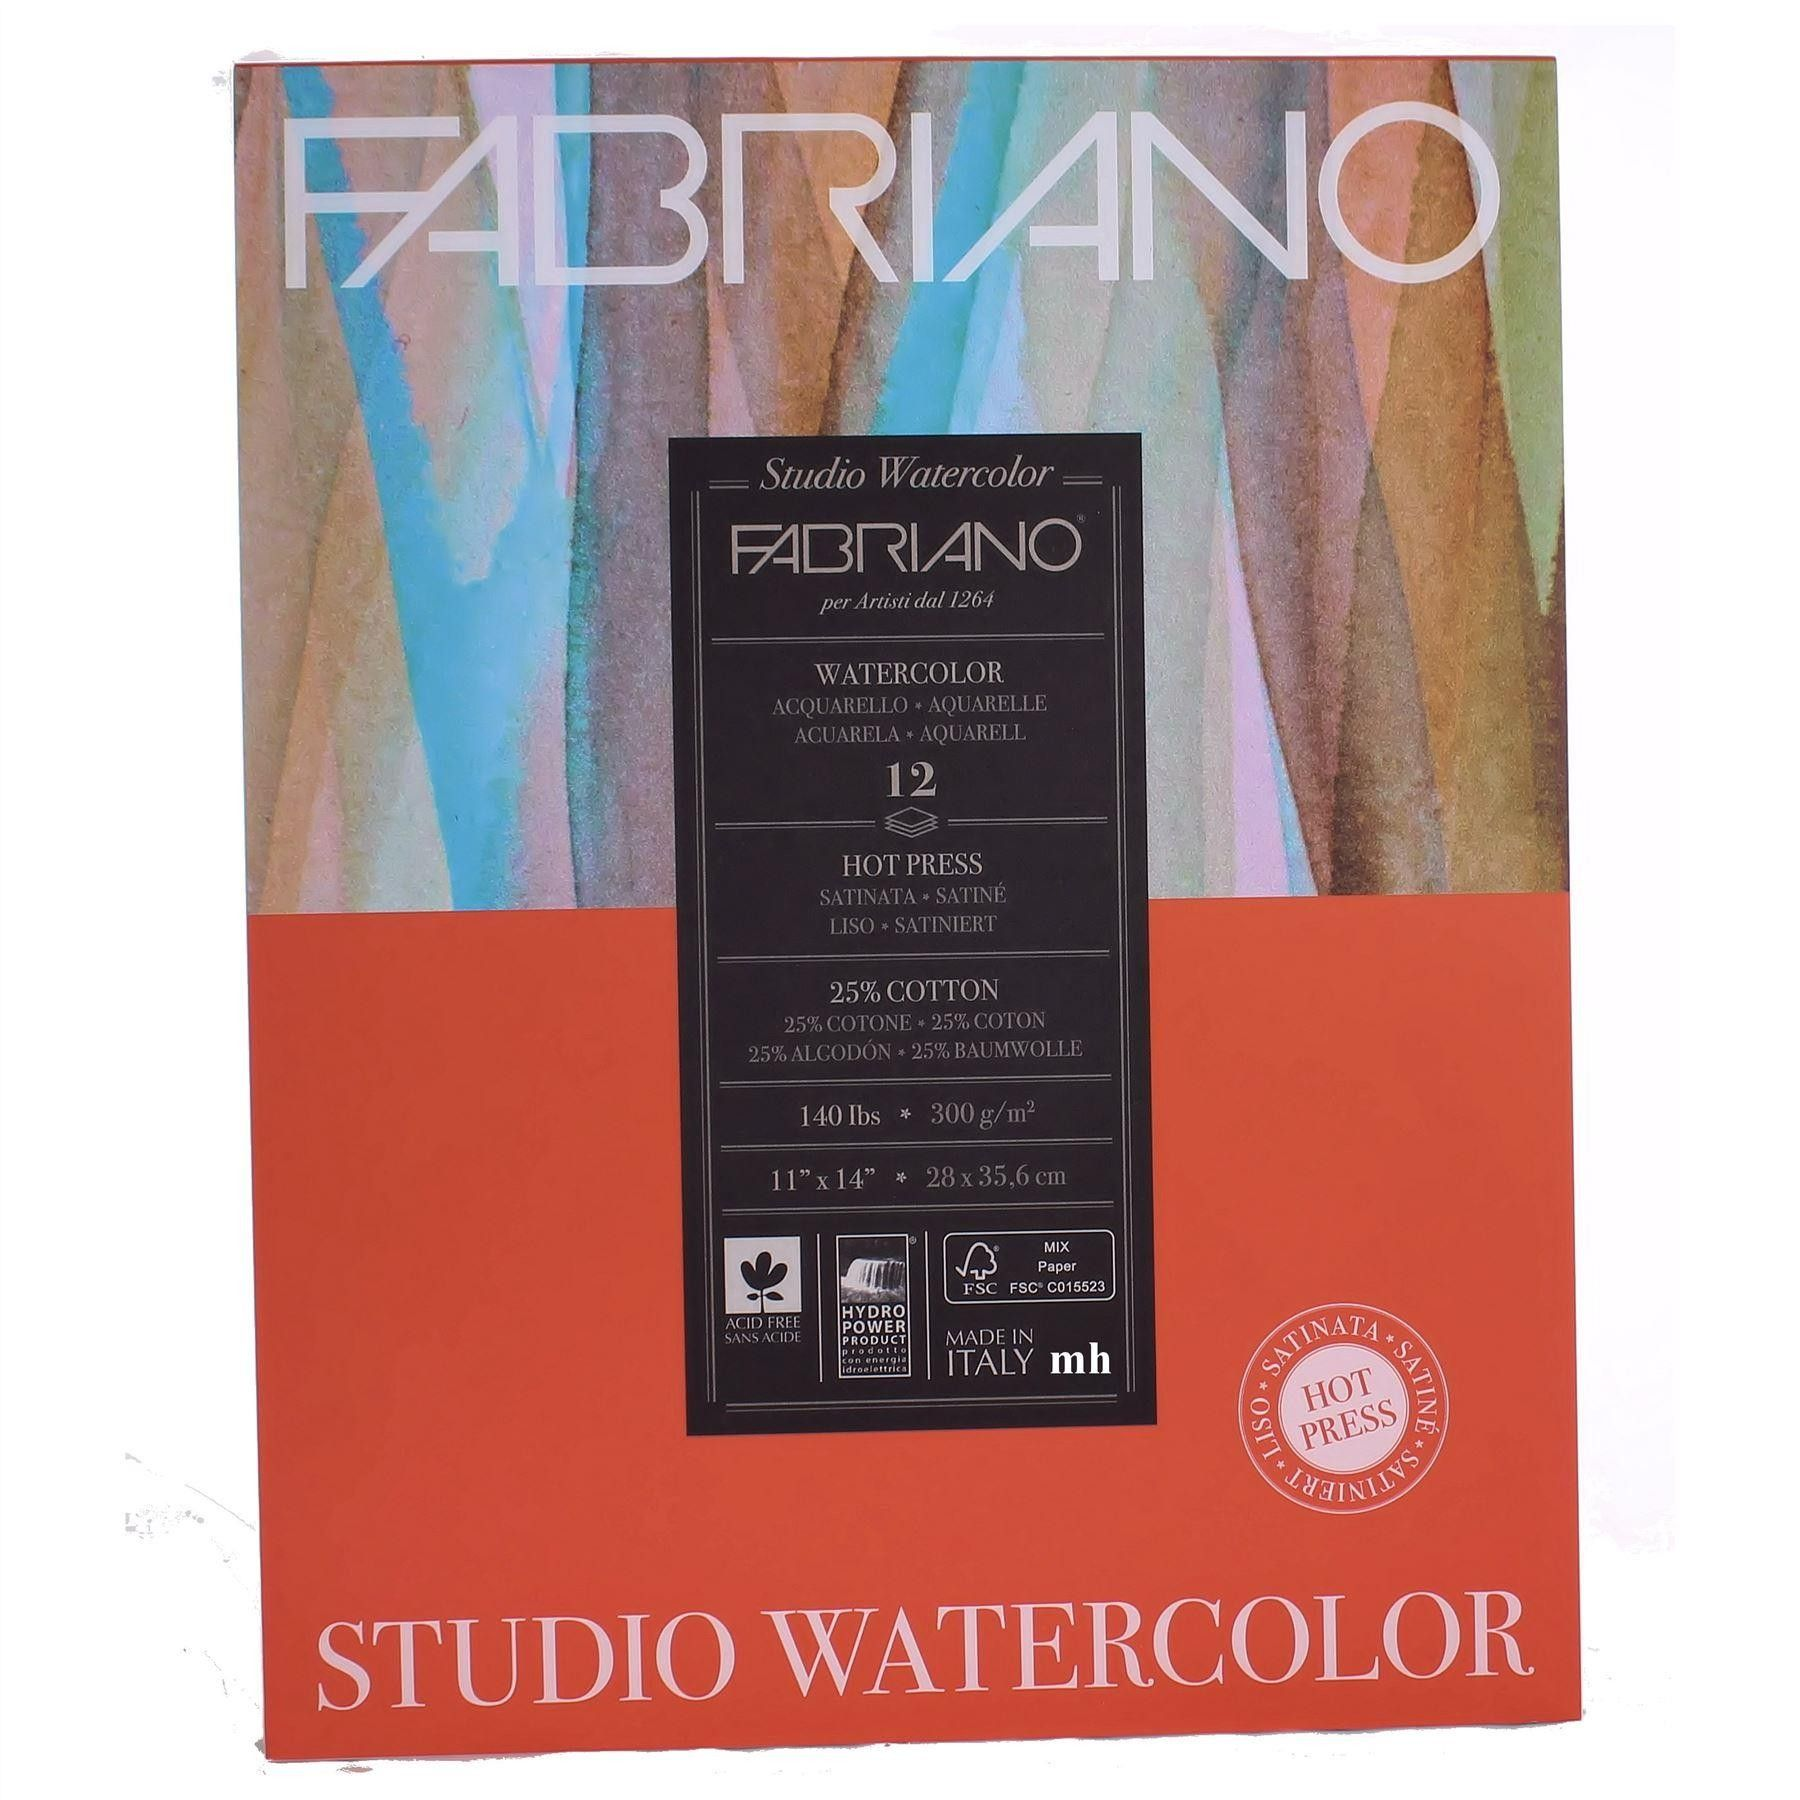 Fabriano Studio Watercolour Pad Fabriano Paper Pads Watercolor